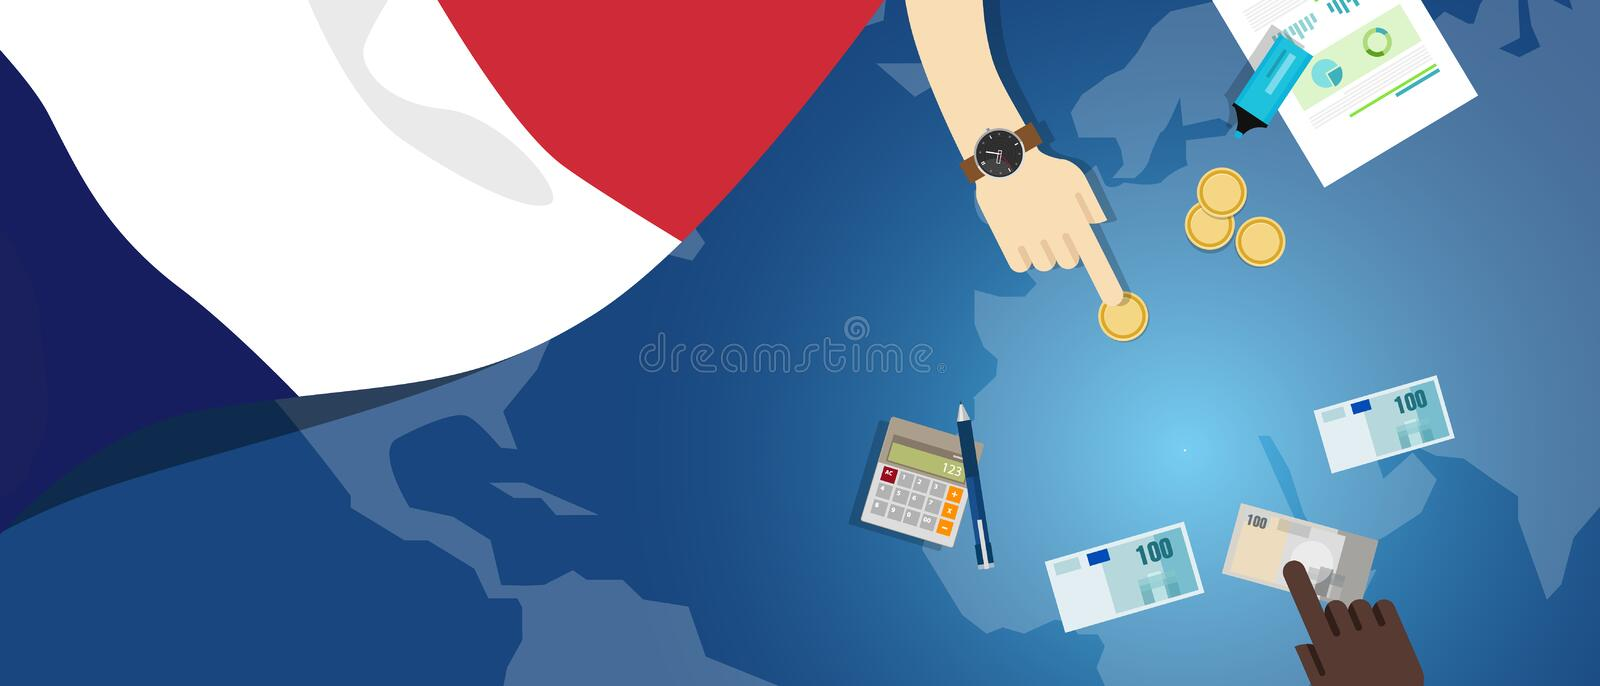 France economy fiscal money trade concept illustration of financial banking budget with flag map and currency. Vector royalty free illustration